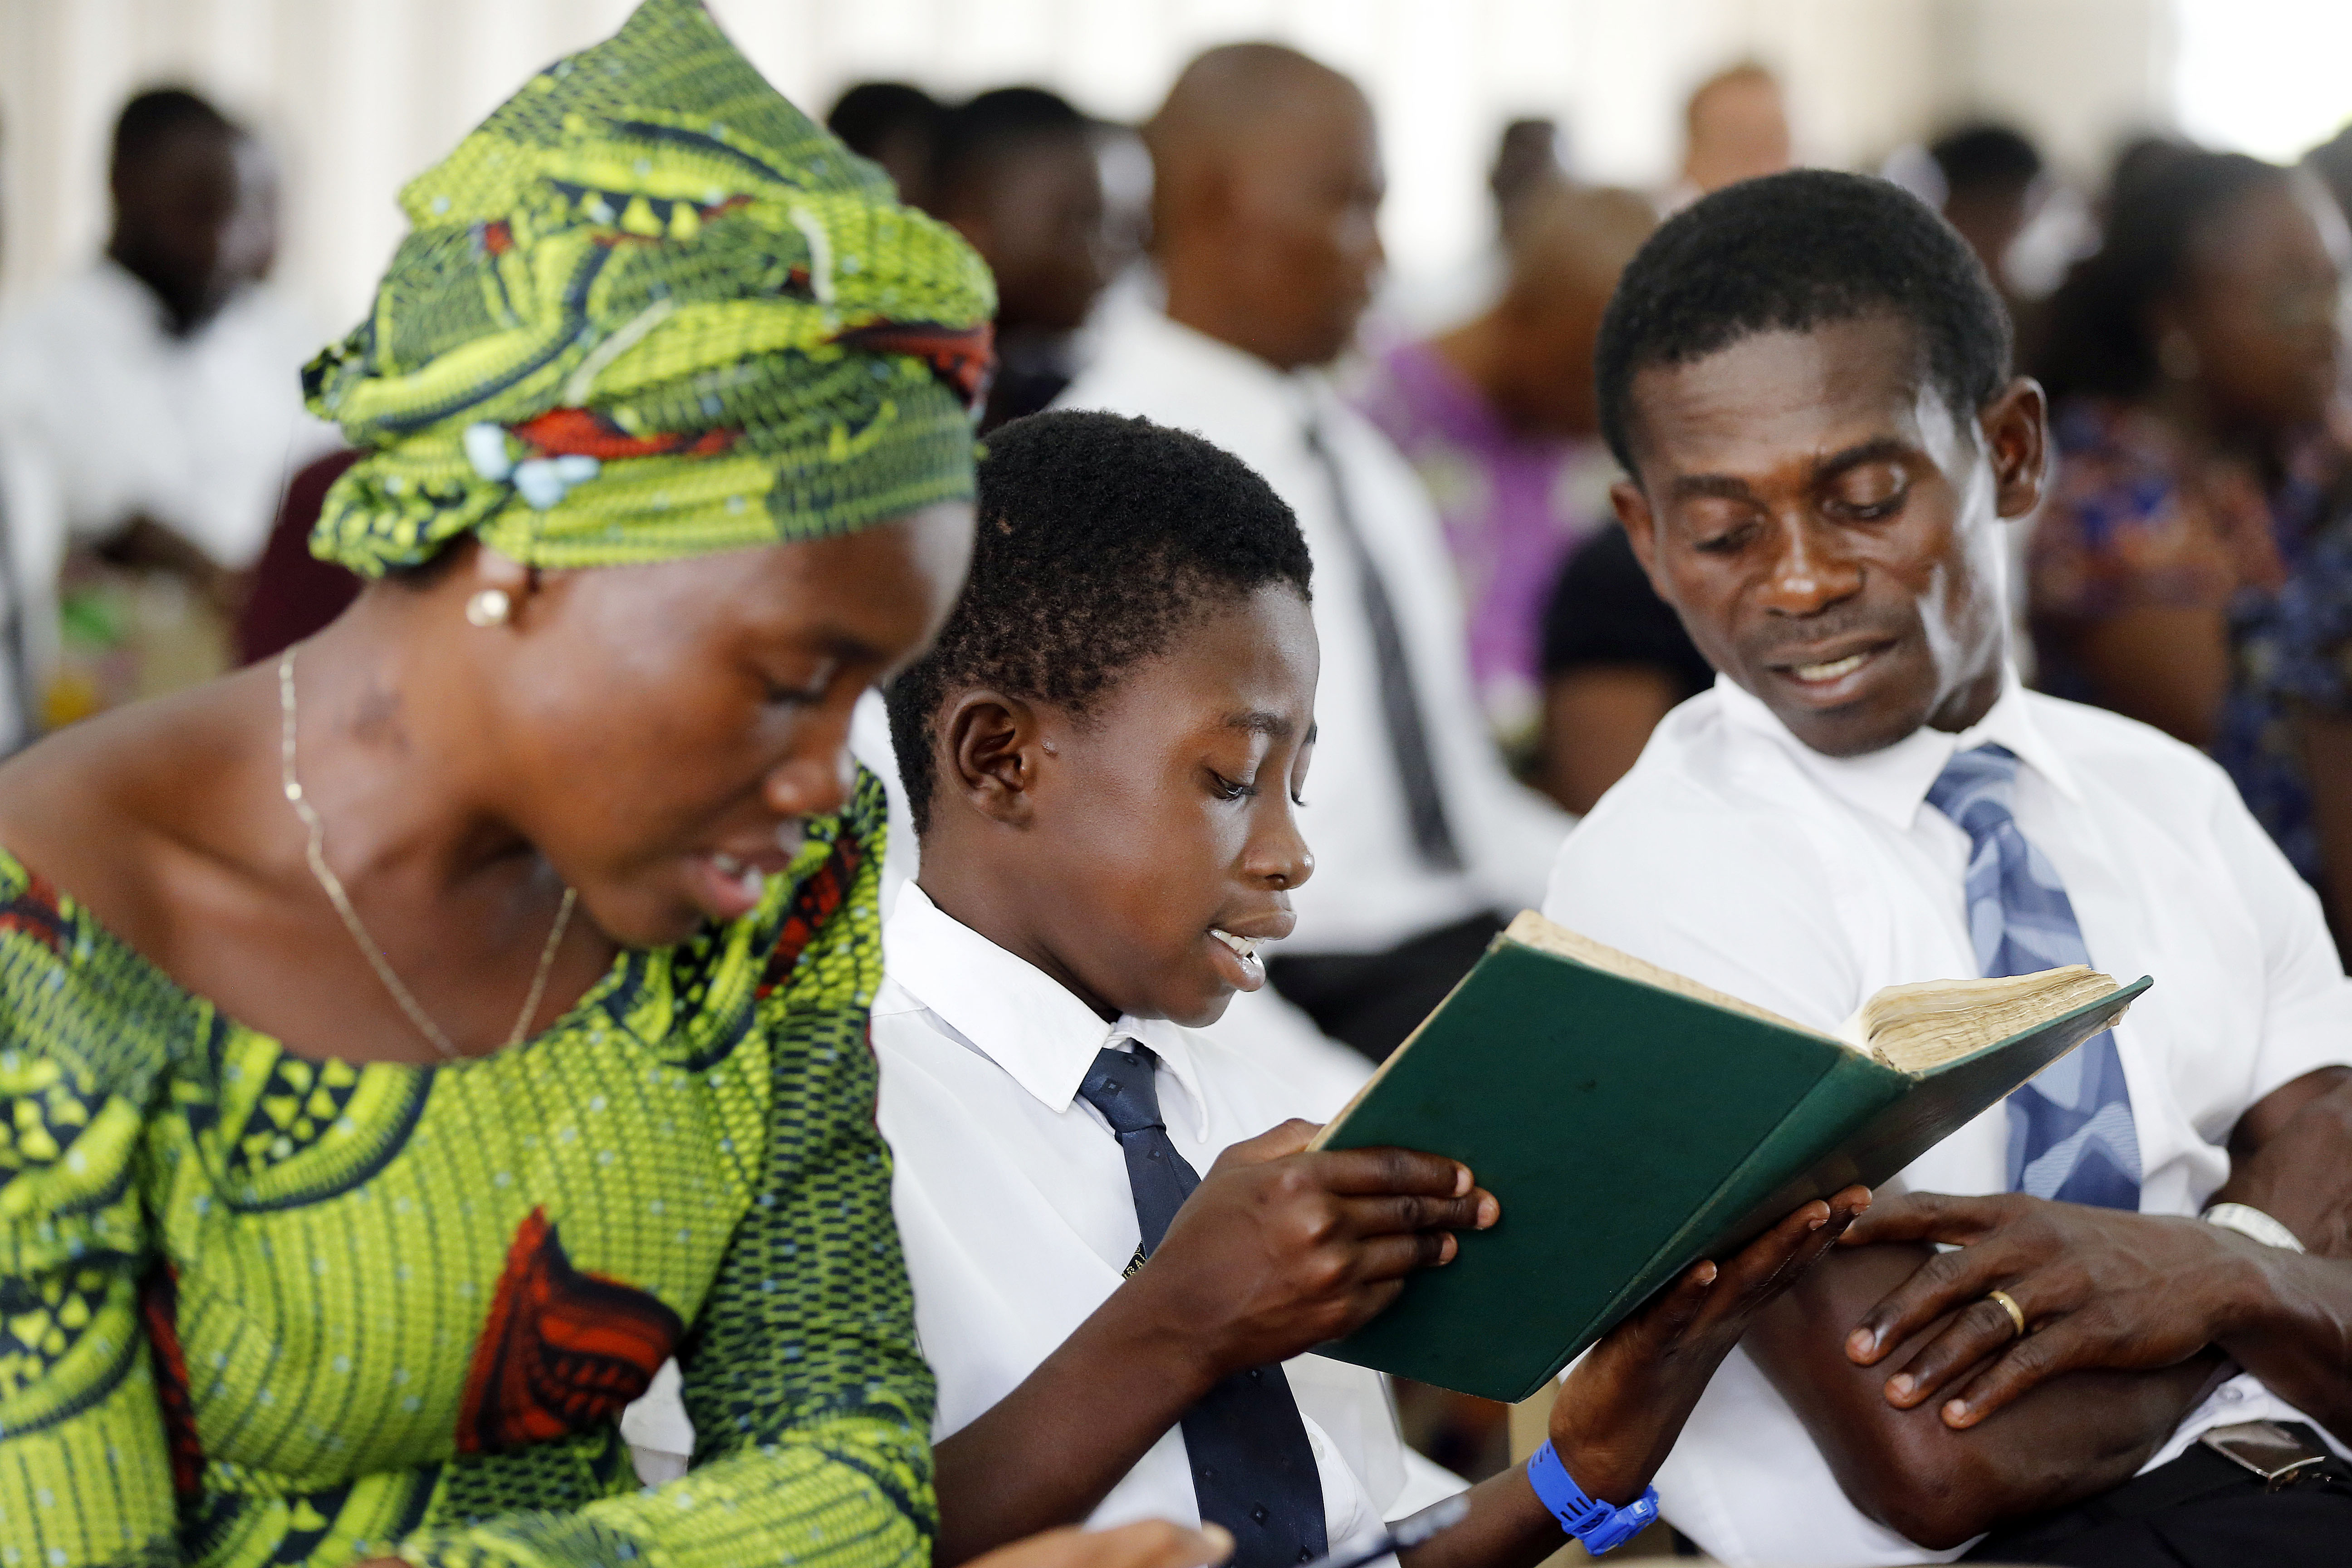 Rebecca Mawusi, Joseph Smith Addai, and his father Andrews Adu Gyamfi sing during Sacrament Meeting at the Bantama Stake Center in Kumasi, Ghana on Sunday, April 22, 2018. In November 2018, the Young Women general presidency wrote about how the sacred emblems of the sacrament help us remember Jesus Christ.